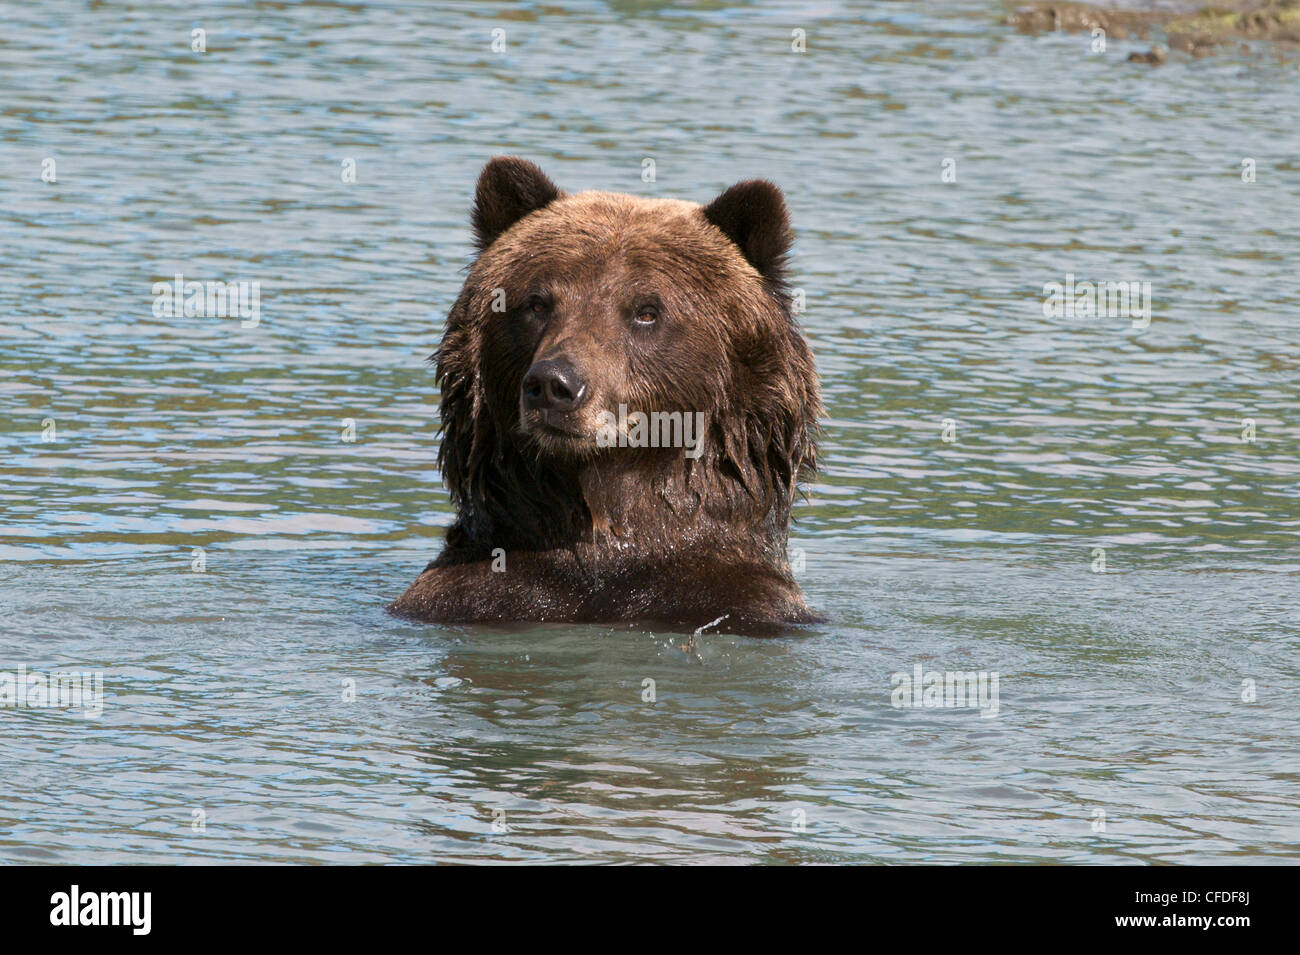 Grizzly bear its head body water-looking viewer; - Stock Image